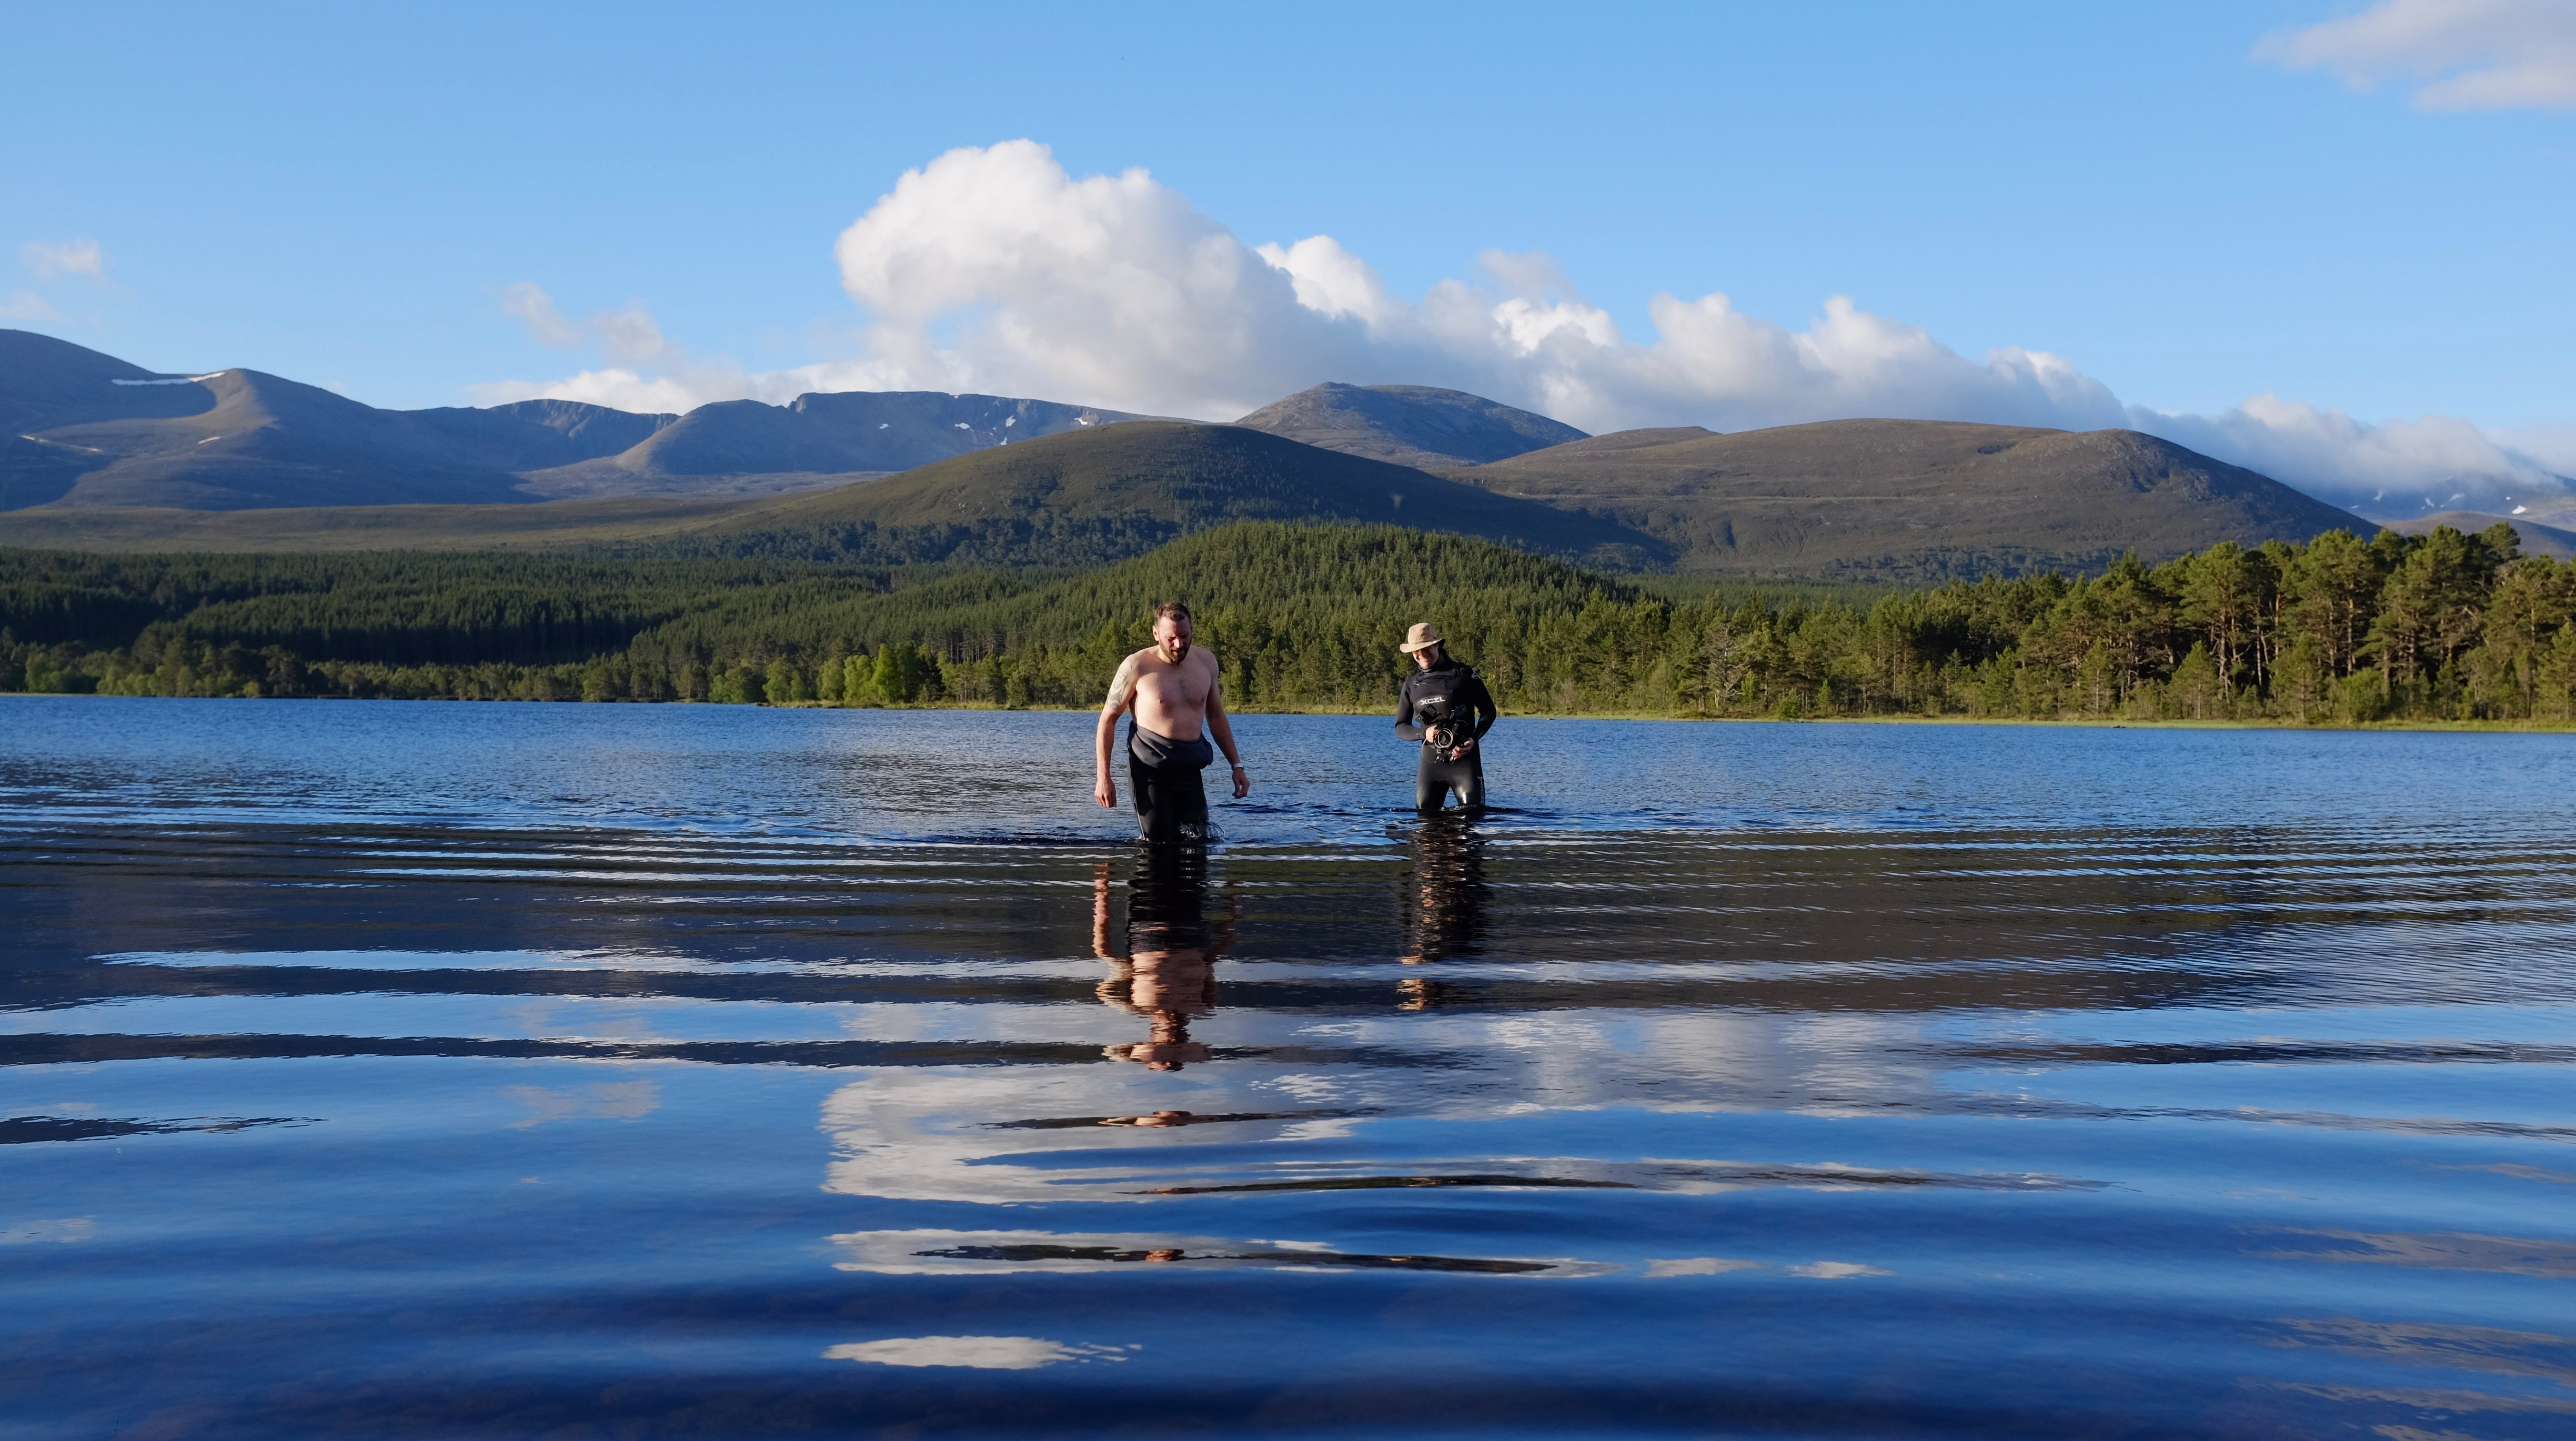 Filming Mark in the middle of a freezing Loch Morlich at 5am